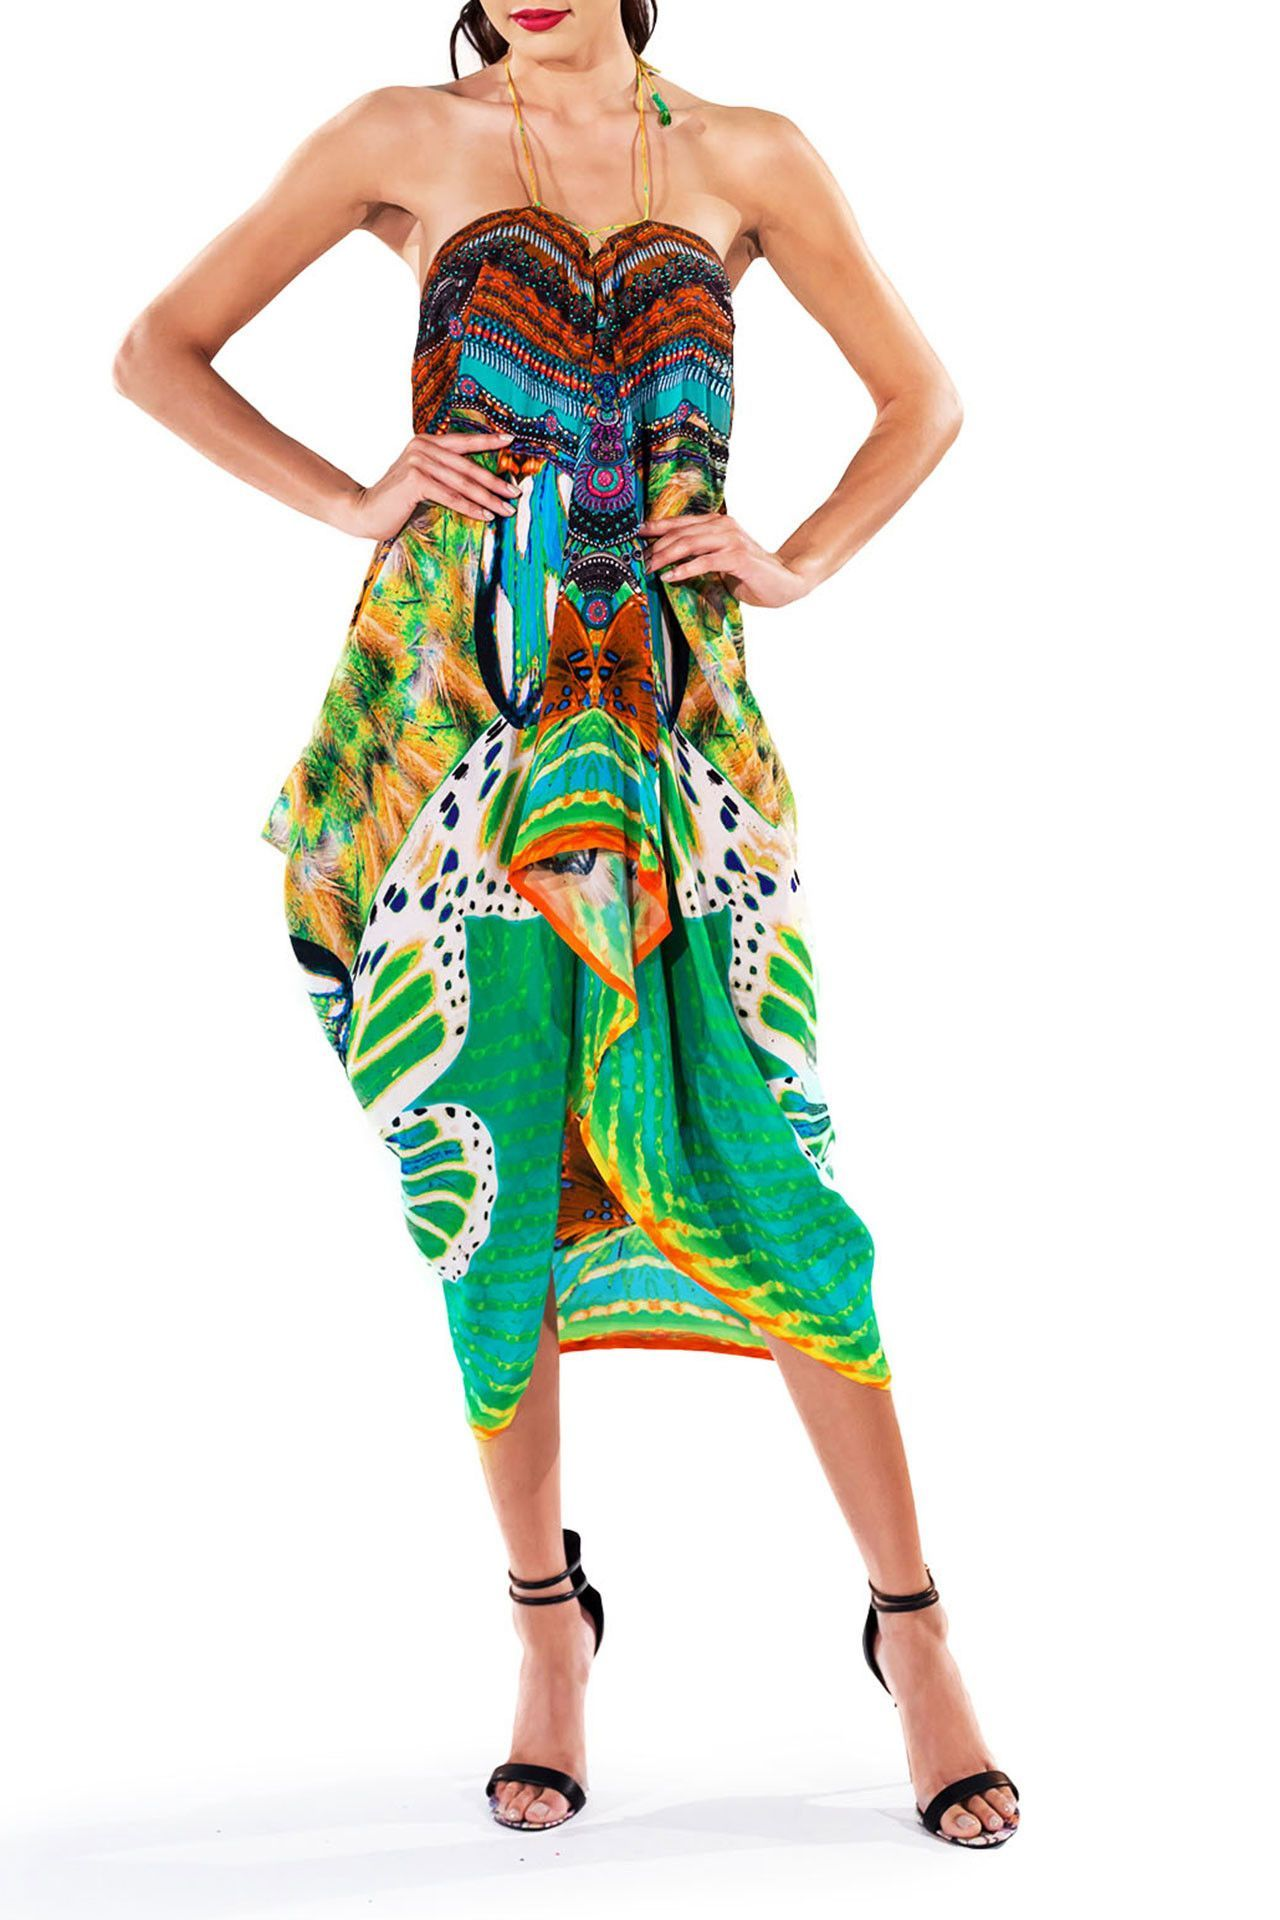 Shahida parides designer resort kaftan luxury beach tunic beach